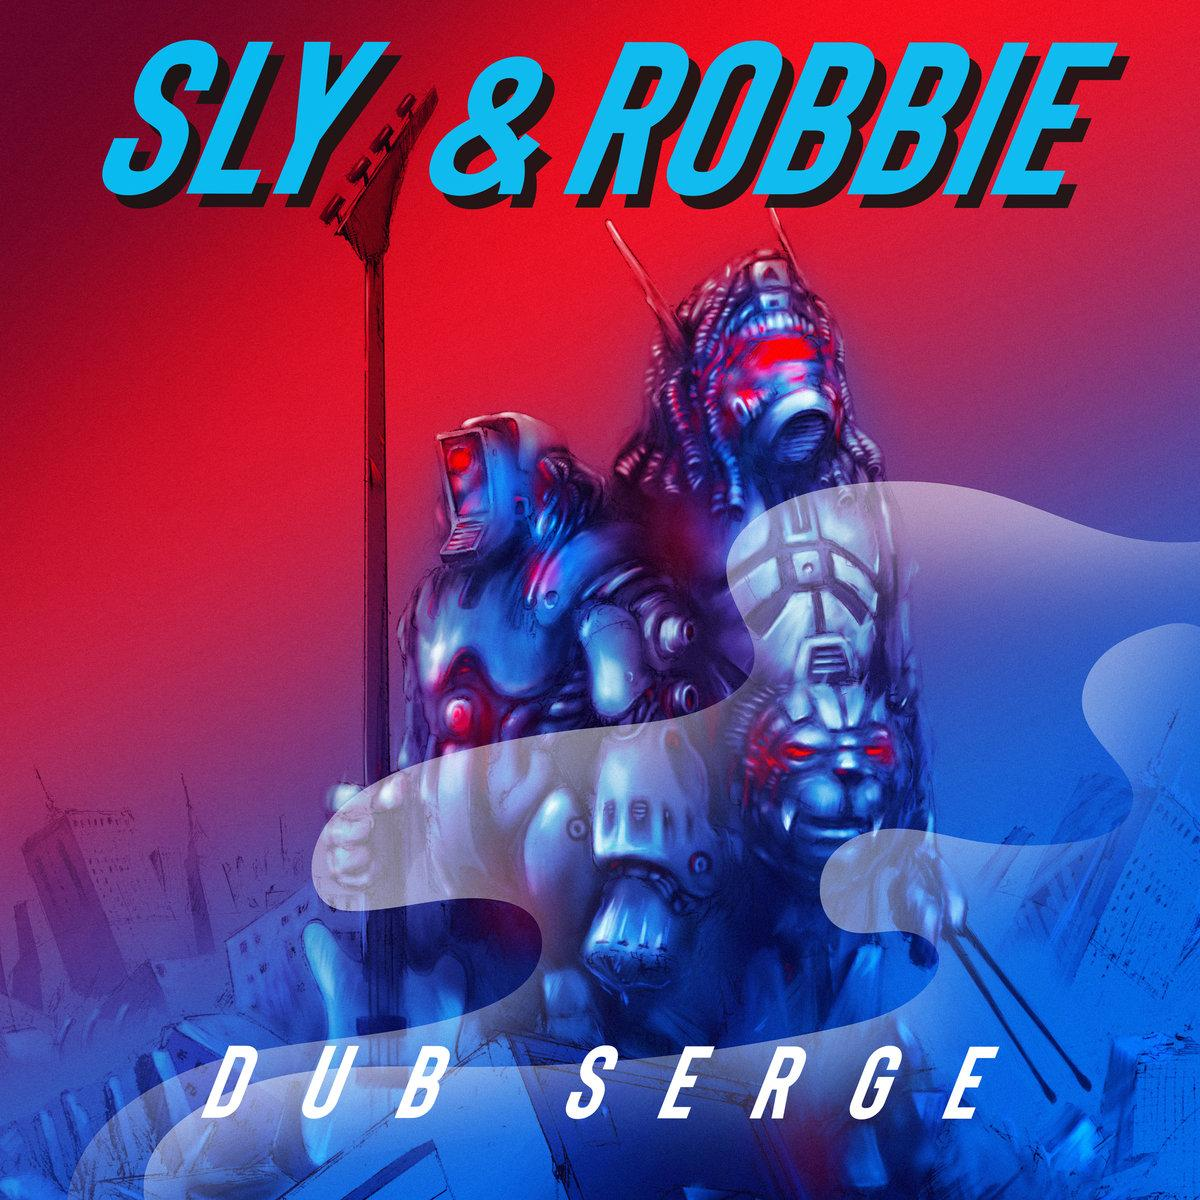 Sly & Robby Dub Serge sur le label Tabou1